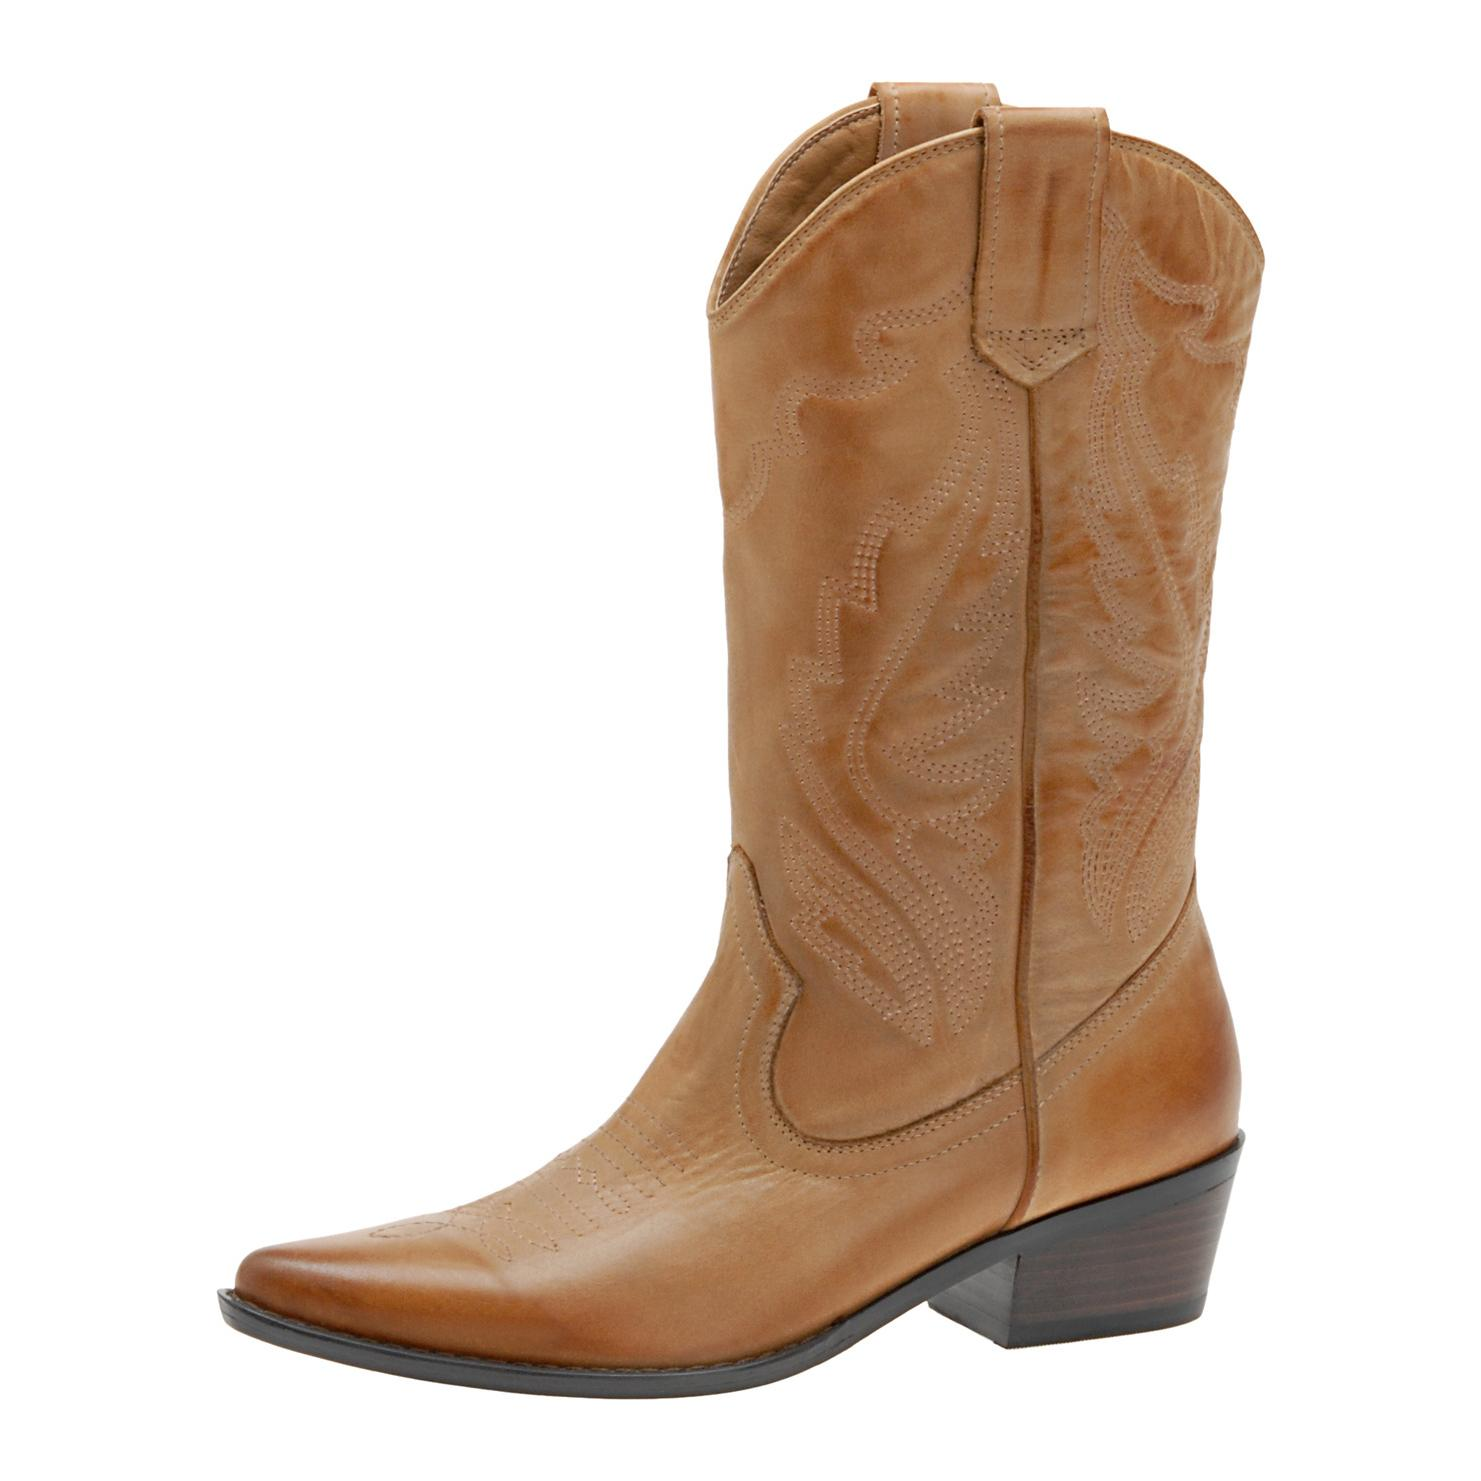 1481x1481 Best Cowboy Boot Pictures Of Hats And Boots Clipart